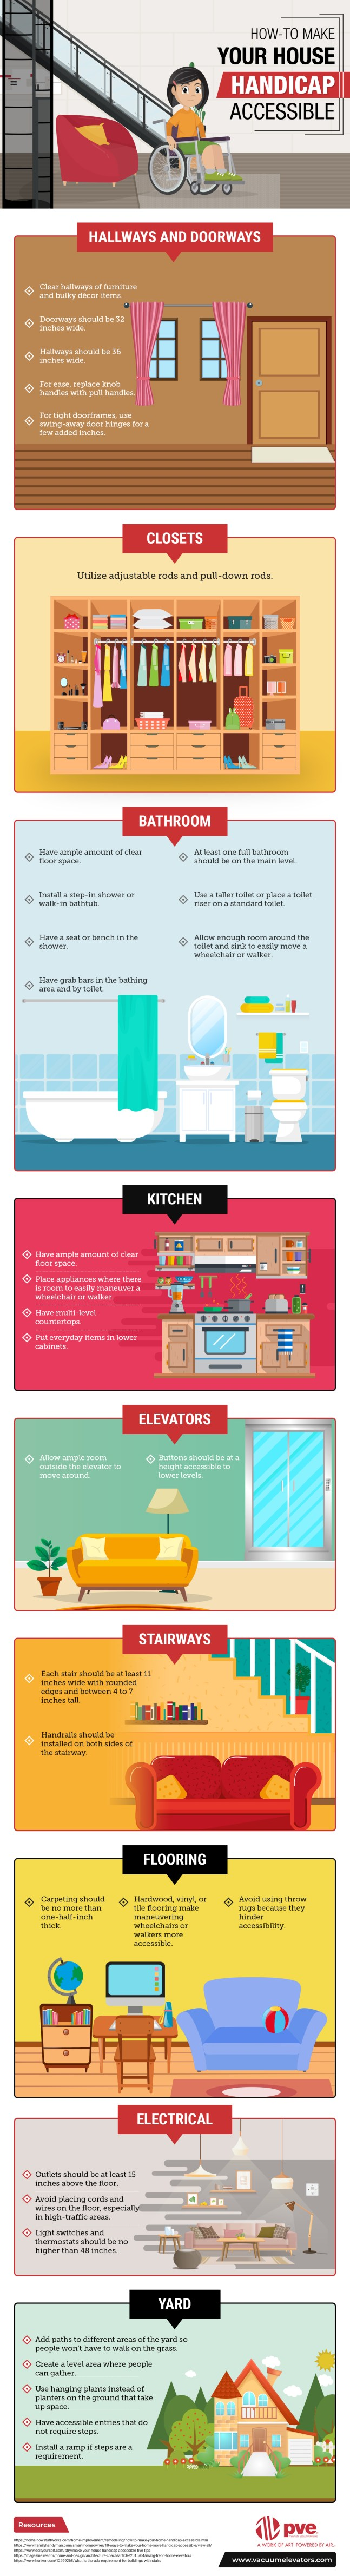 Pneumatic Vacuum Elevators's infographic on how to make your home accessible.